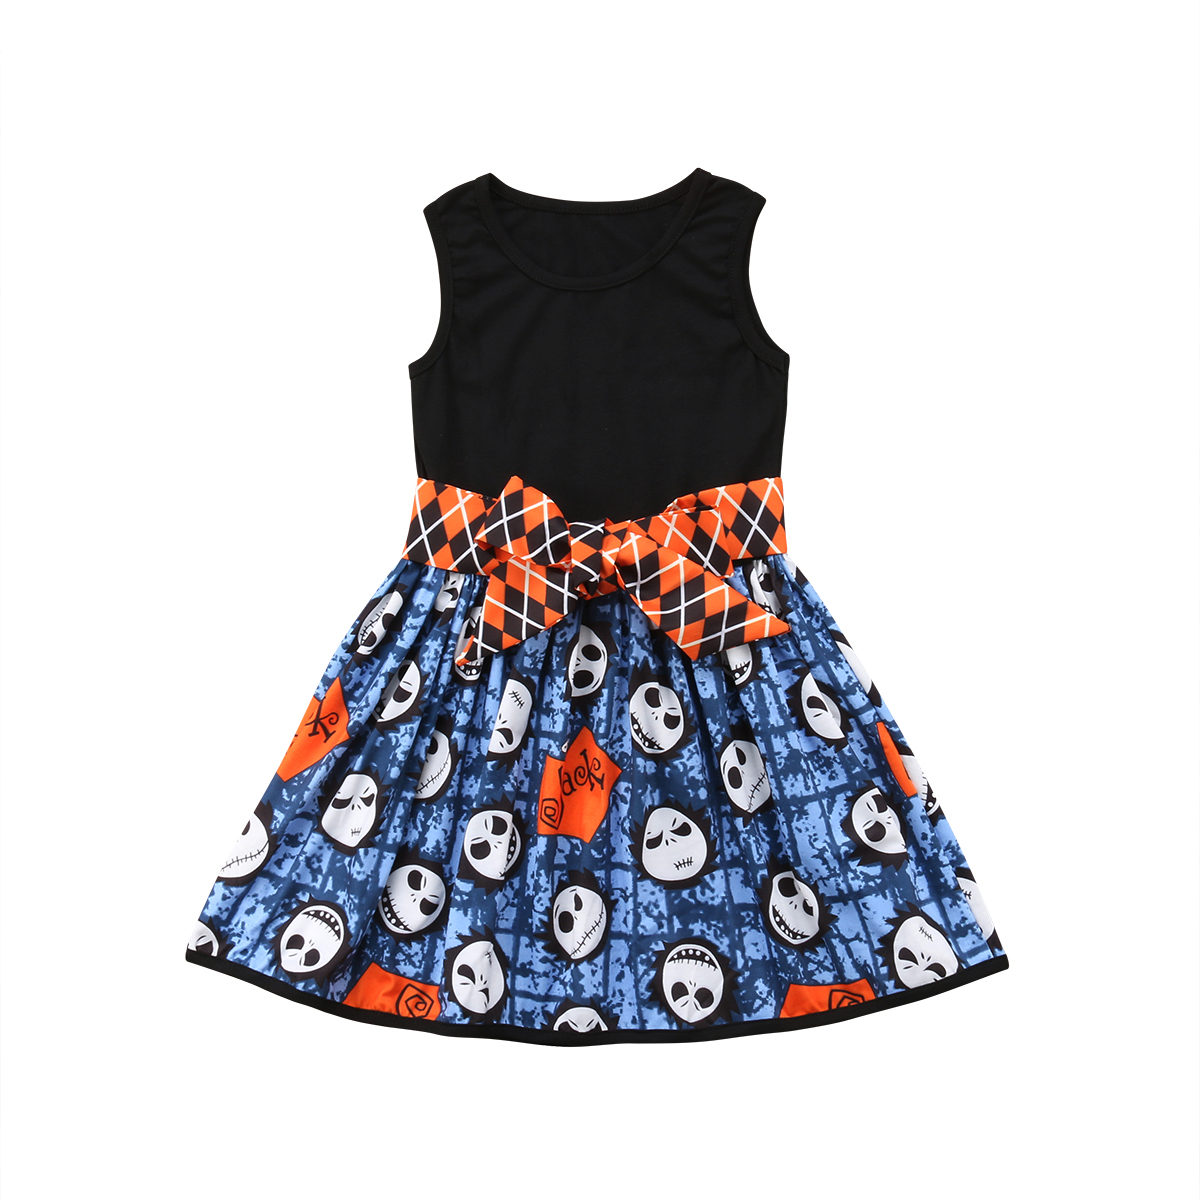 Halloween Party Princess 0-5y Toddler Baby Girls Dress Sleeveless Cartoon Pattern Patchwork Knee-length A-line Dress Girls' Clothing